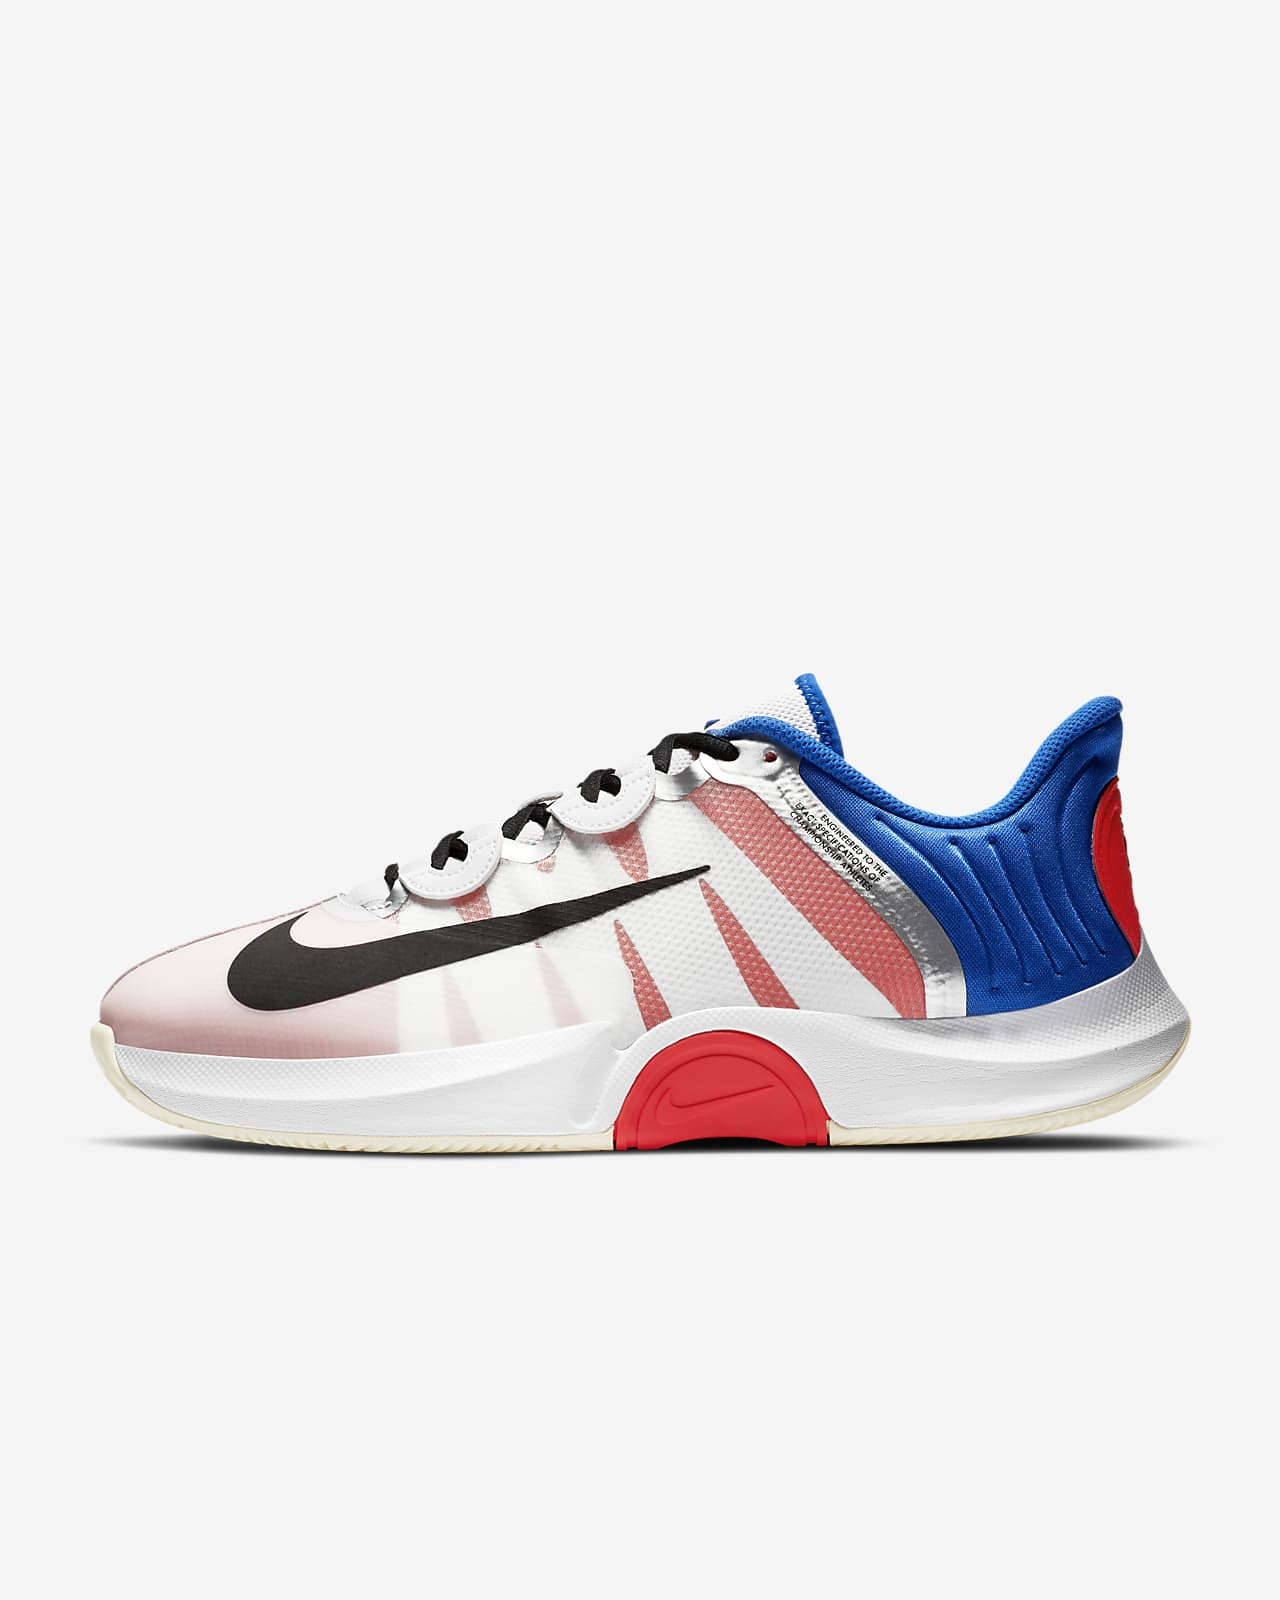 Nikecourt Air Zoom Gp Turbo Men S Clay Tennis Shoe Nike Il